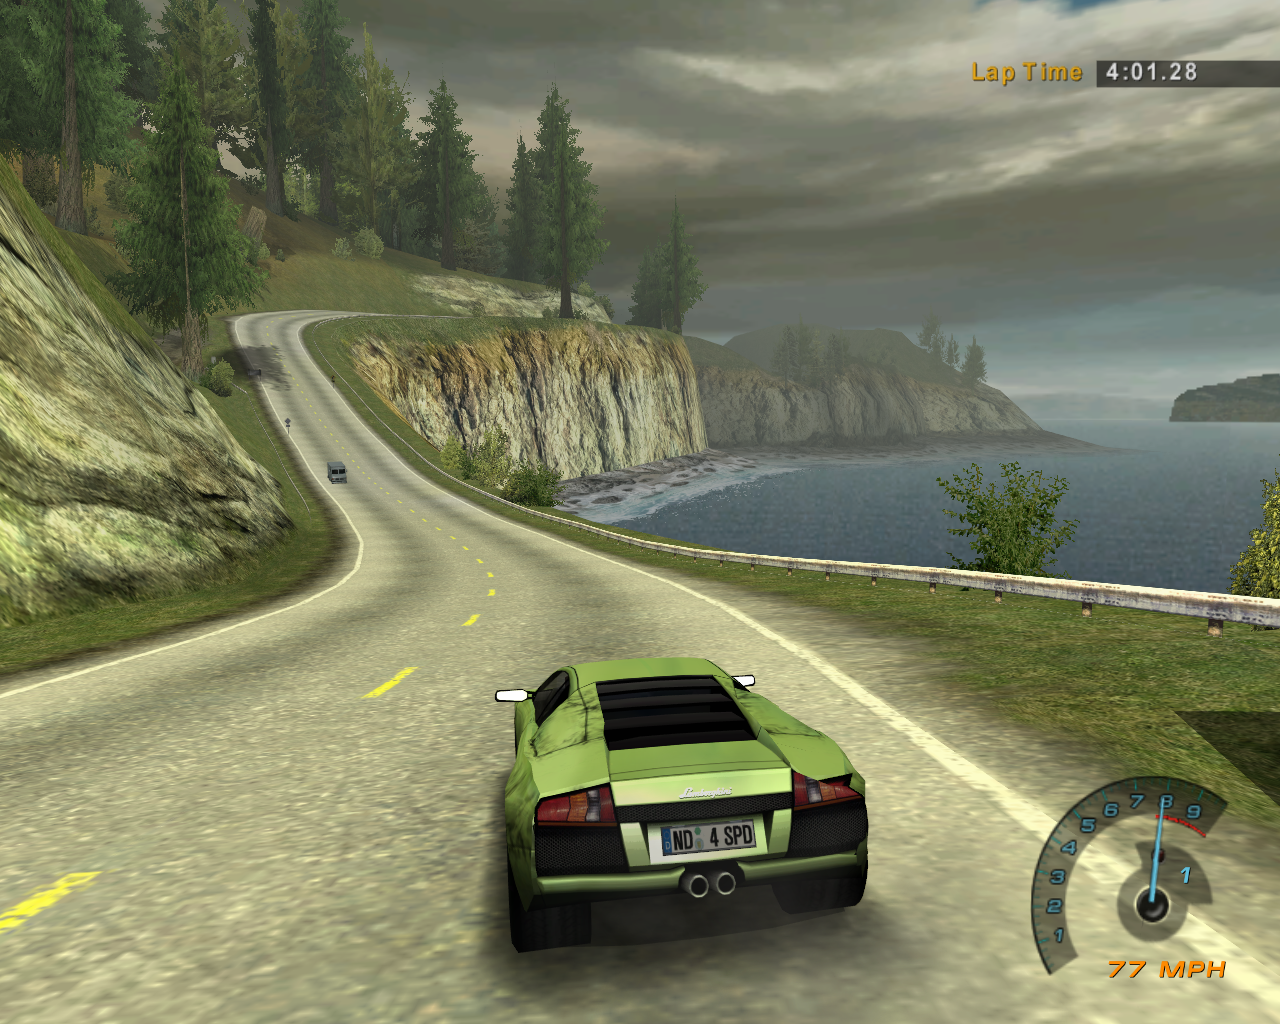 Need for speed hot pursuit 2 demo game download wiskey petes hotel and casino nevada